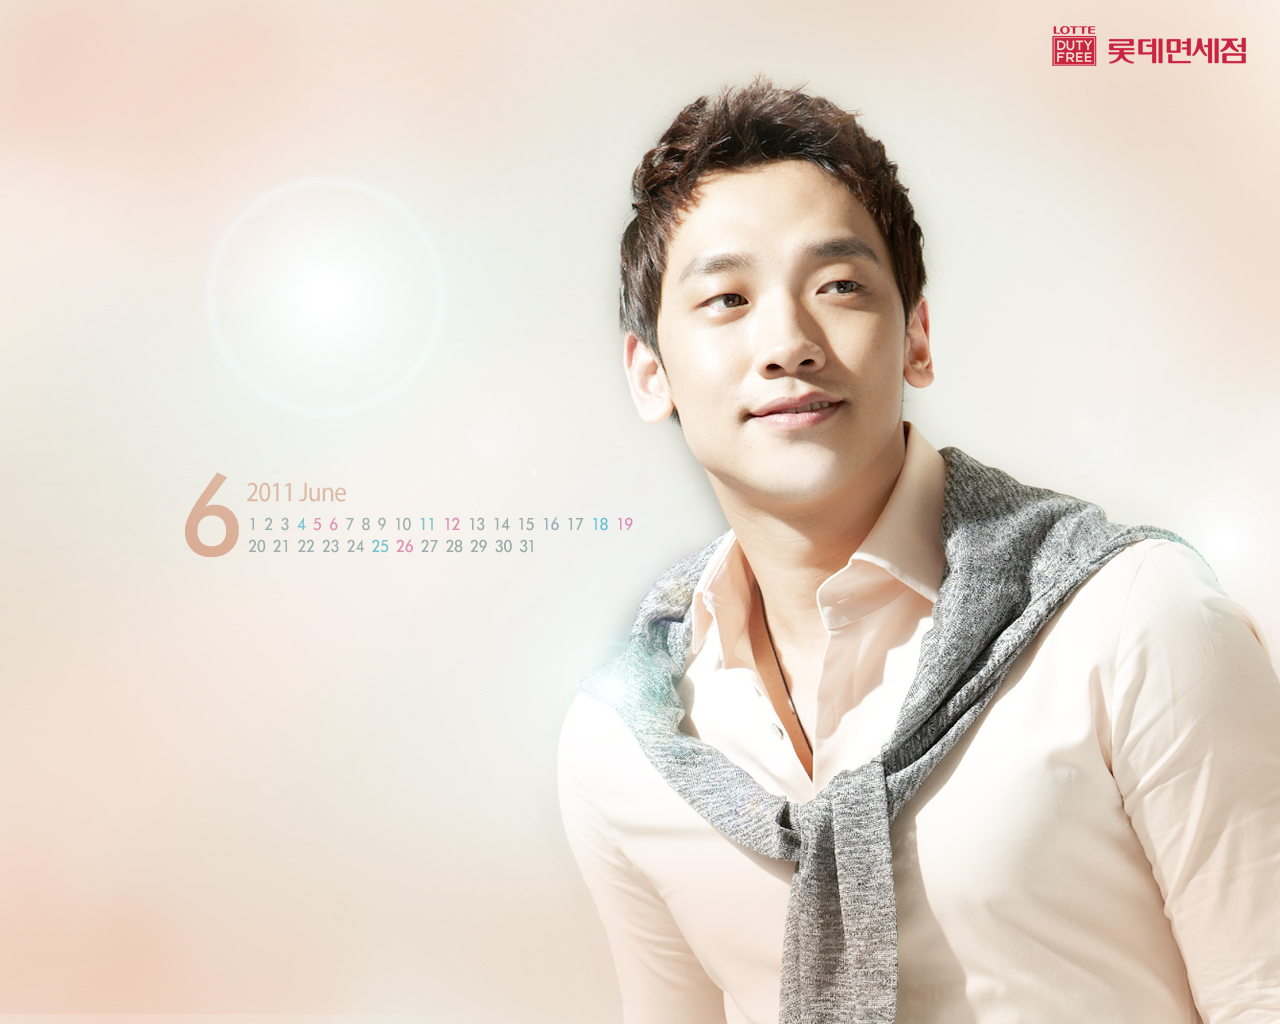 Http Www Fanpop Com Clubs Rain Korean Images 29014314 Title Rain Bi Wallpaper